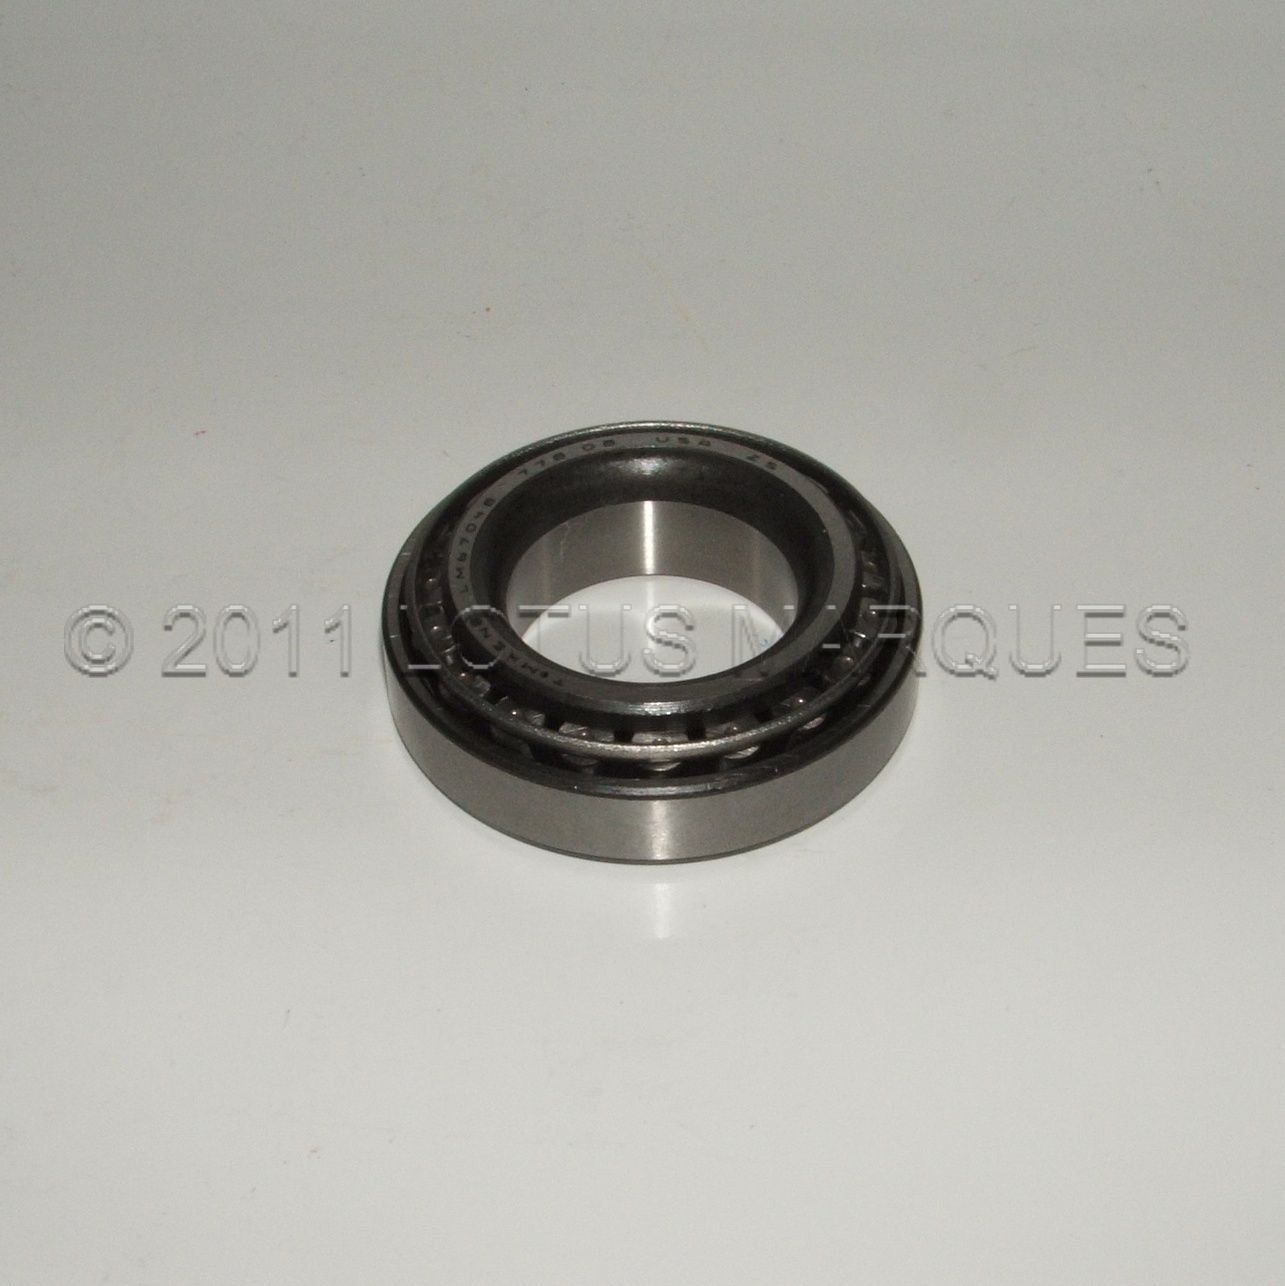 Lotus esprit front wheel bearing, inner front A089C8004F